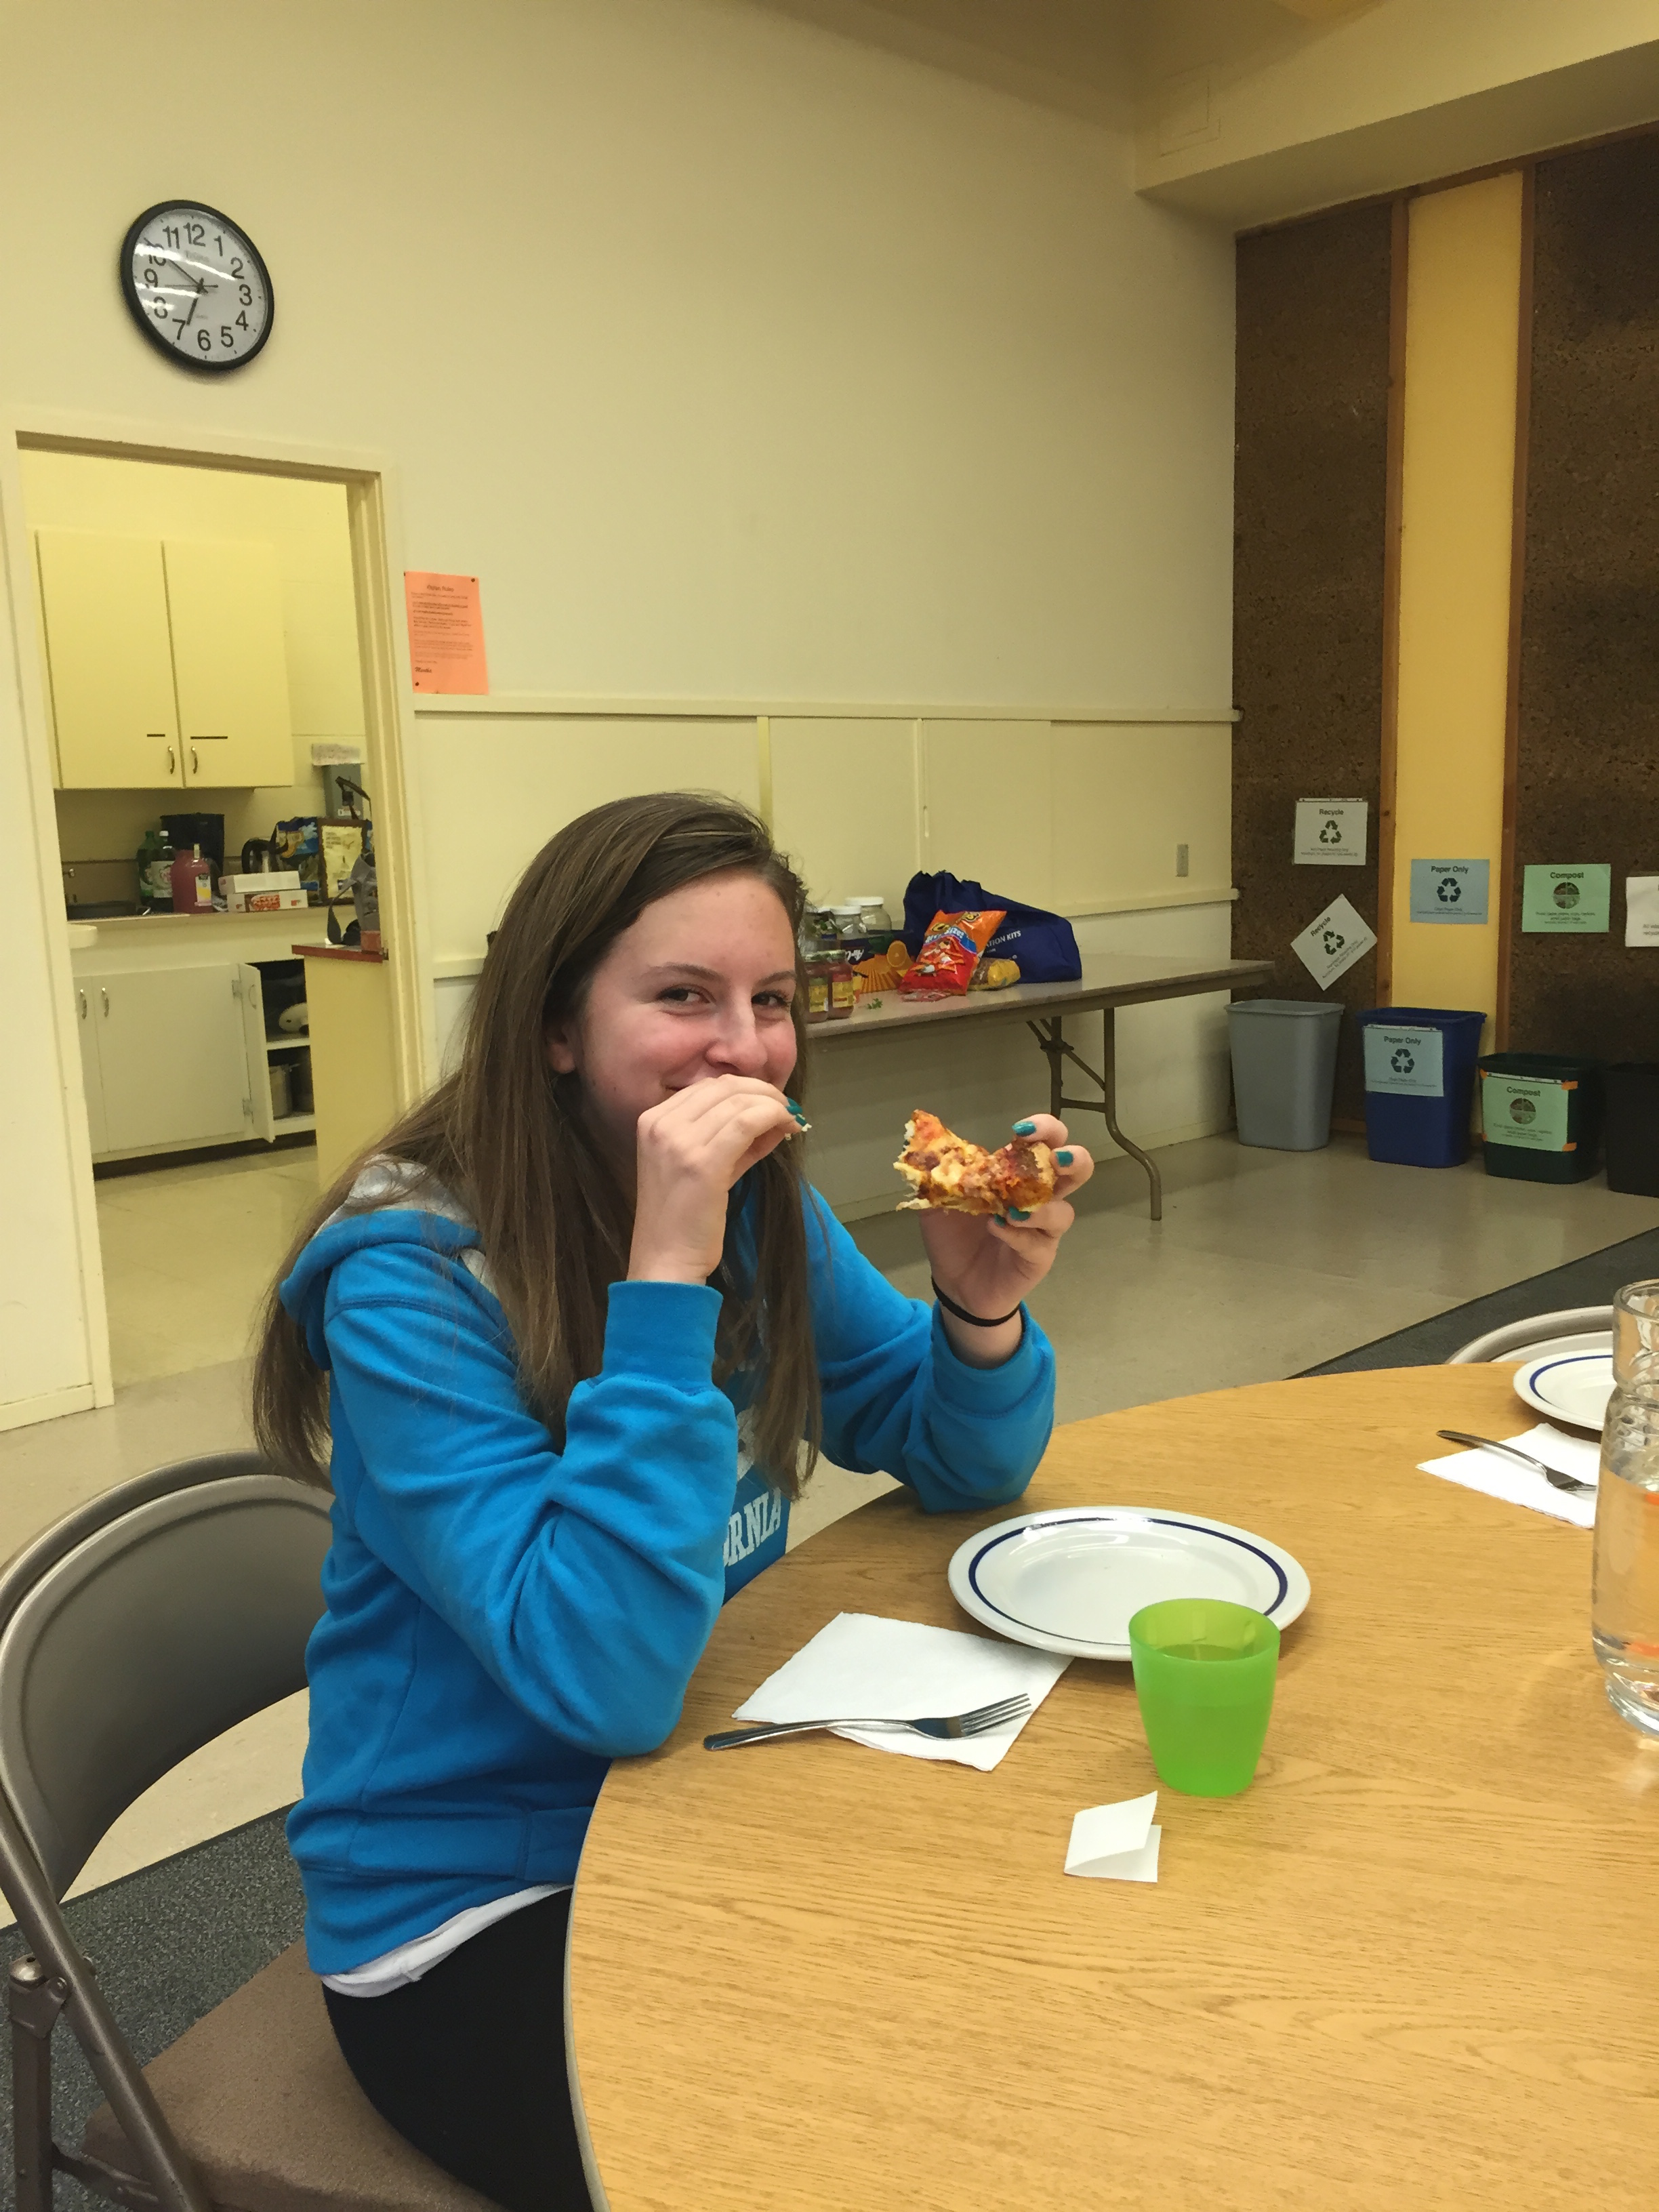 2015-03-13 Confirmation YEAH Meal 2015 1.JPG